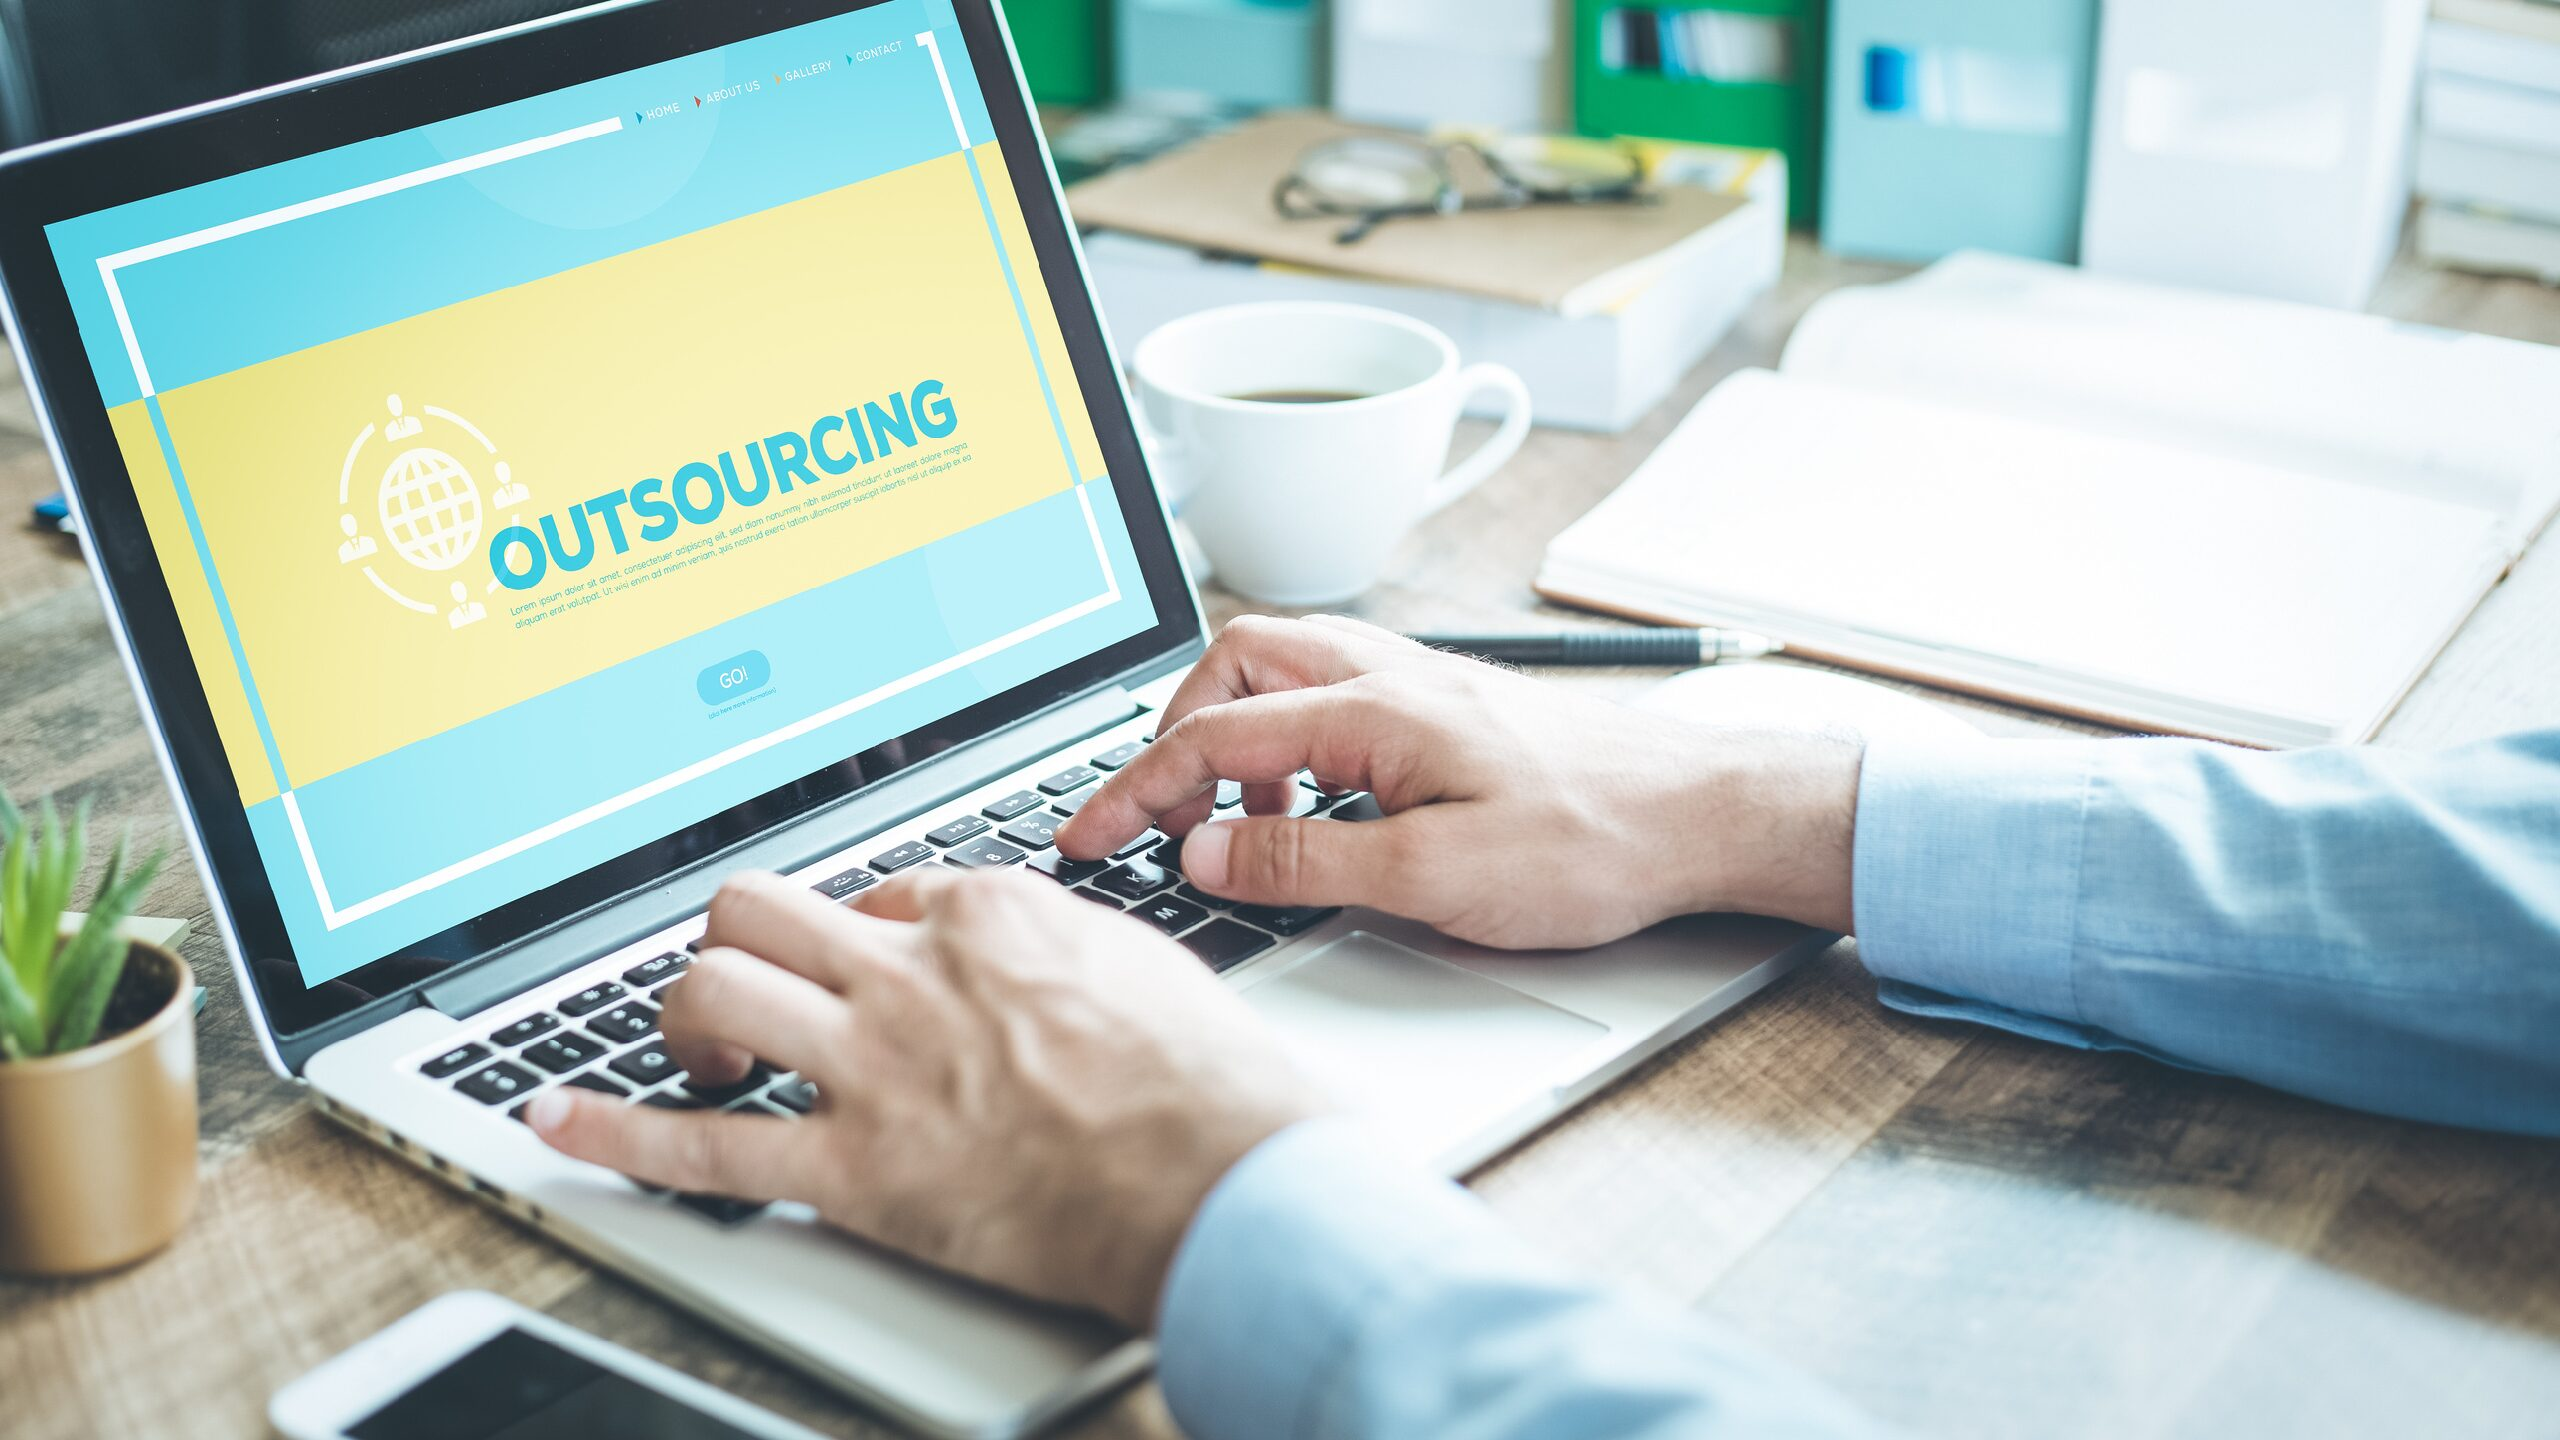 5 Reasons Why Outsourcing Your Social Media Makes Sense